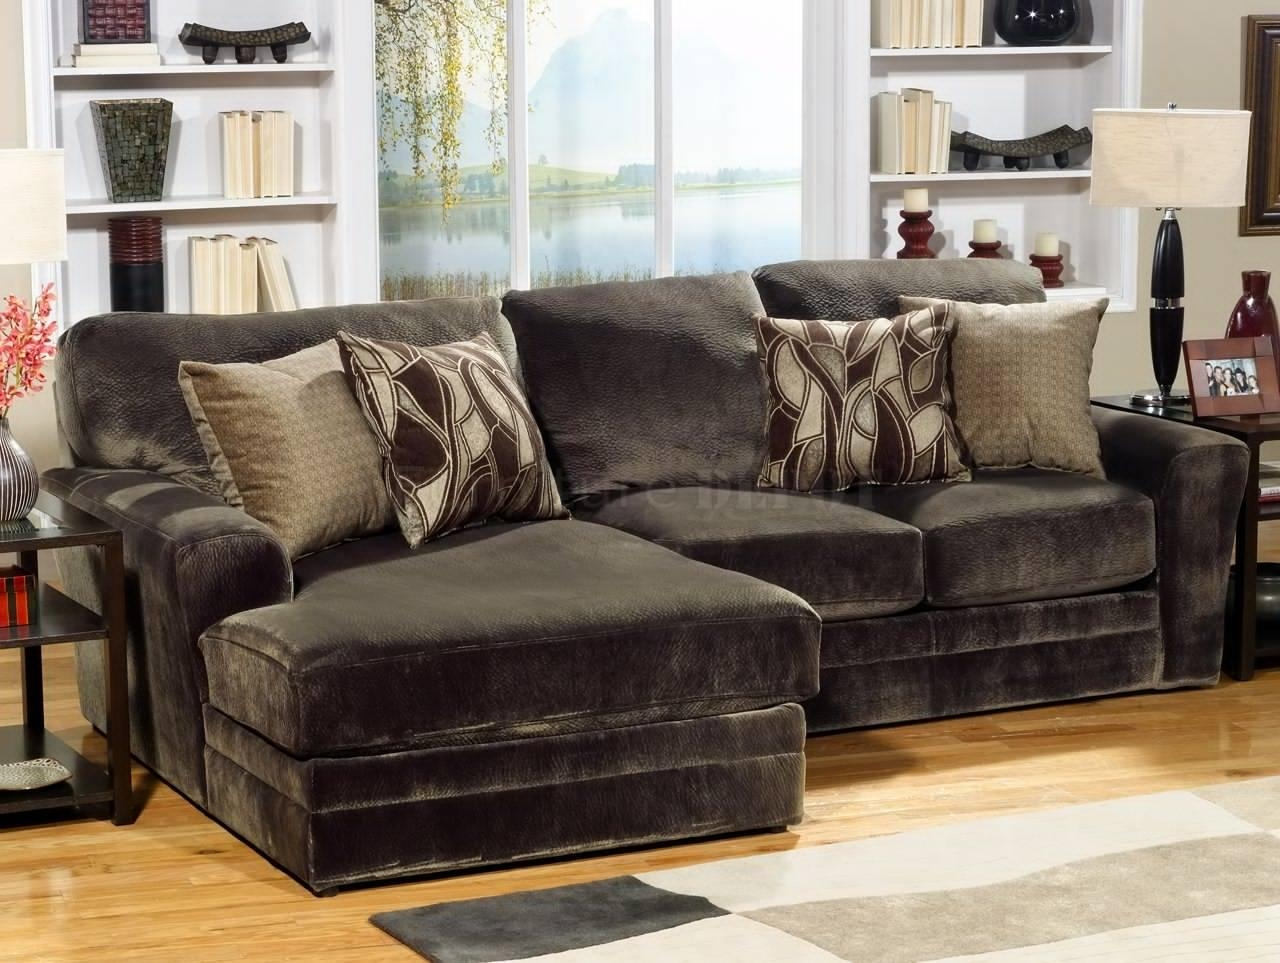 Chenille Sectional Sofa With Chaise 50 With Chenille Sectional Inside Chenille Sectionals (Image 3 of 15)